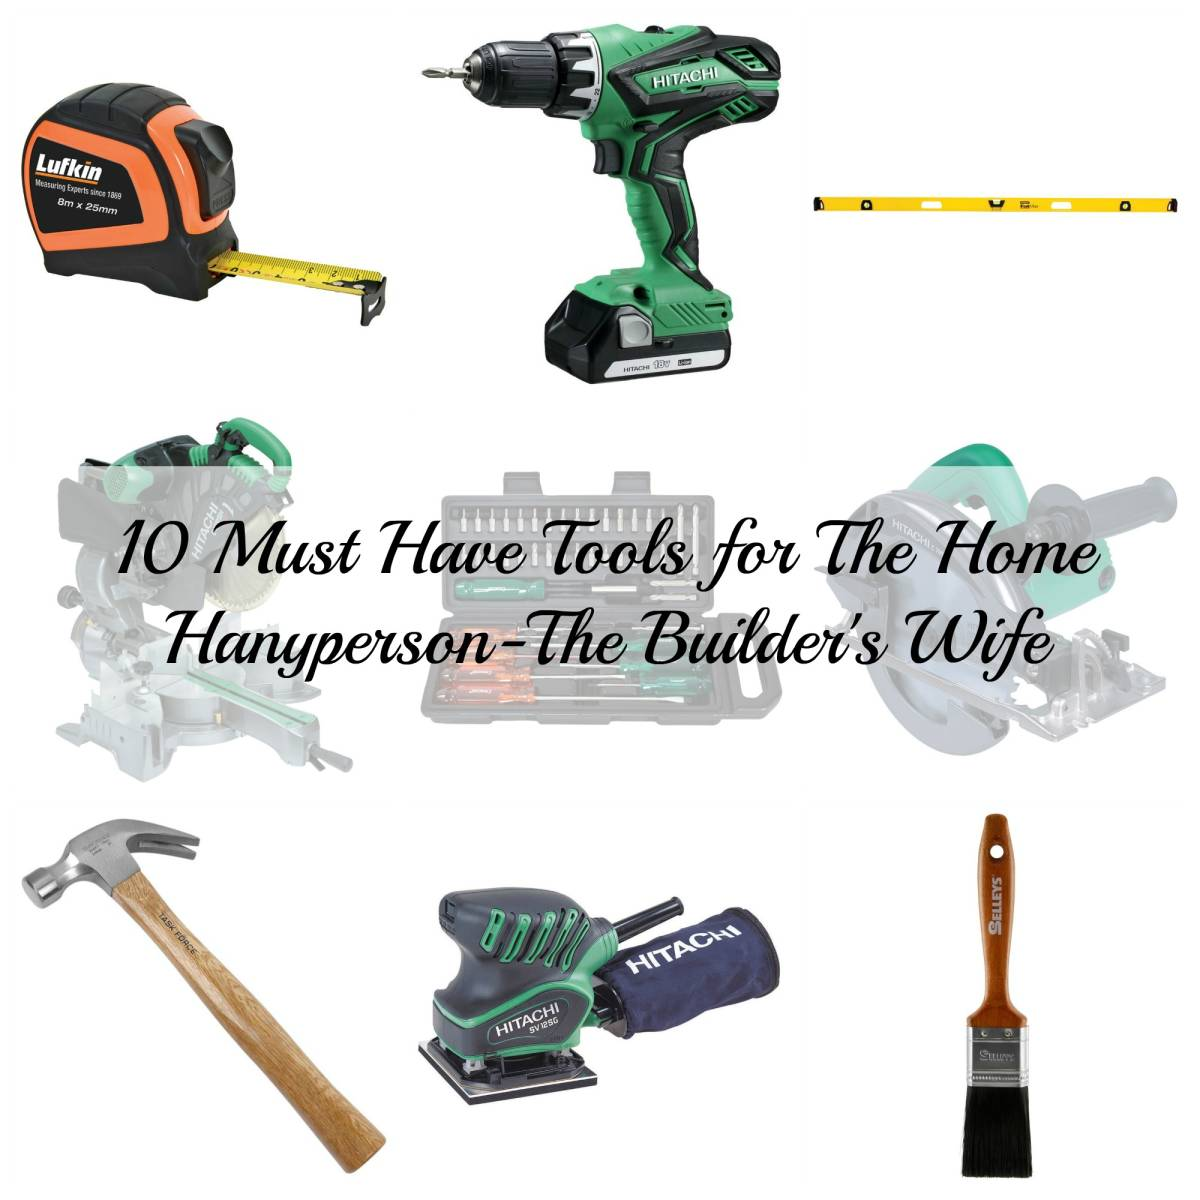 Christmas Gift Guide for The Handyperson of the House